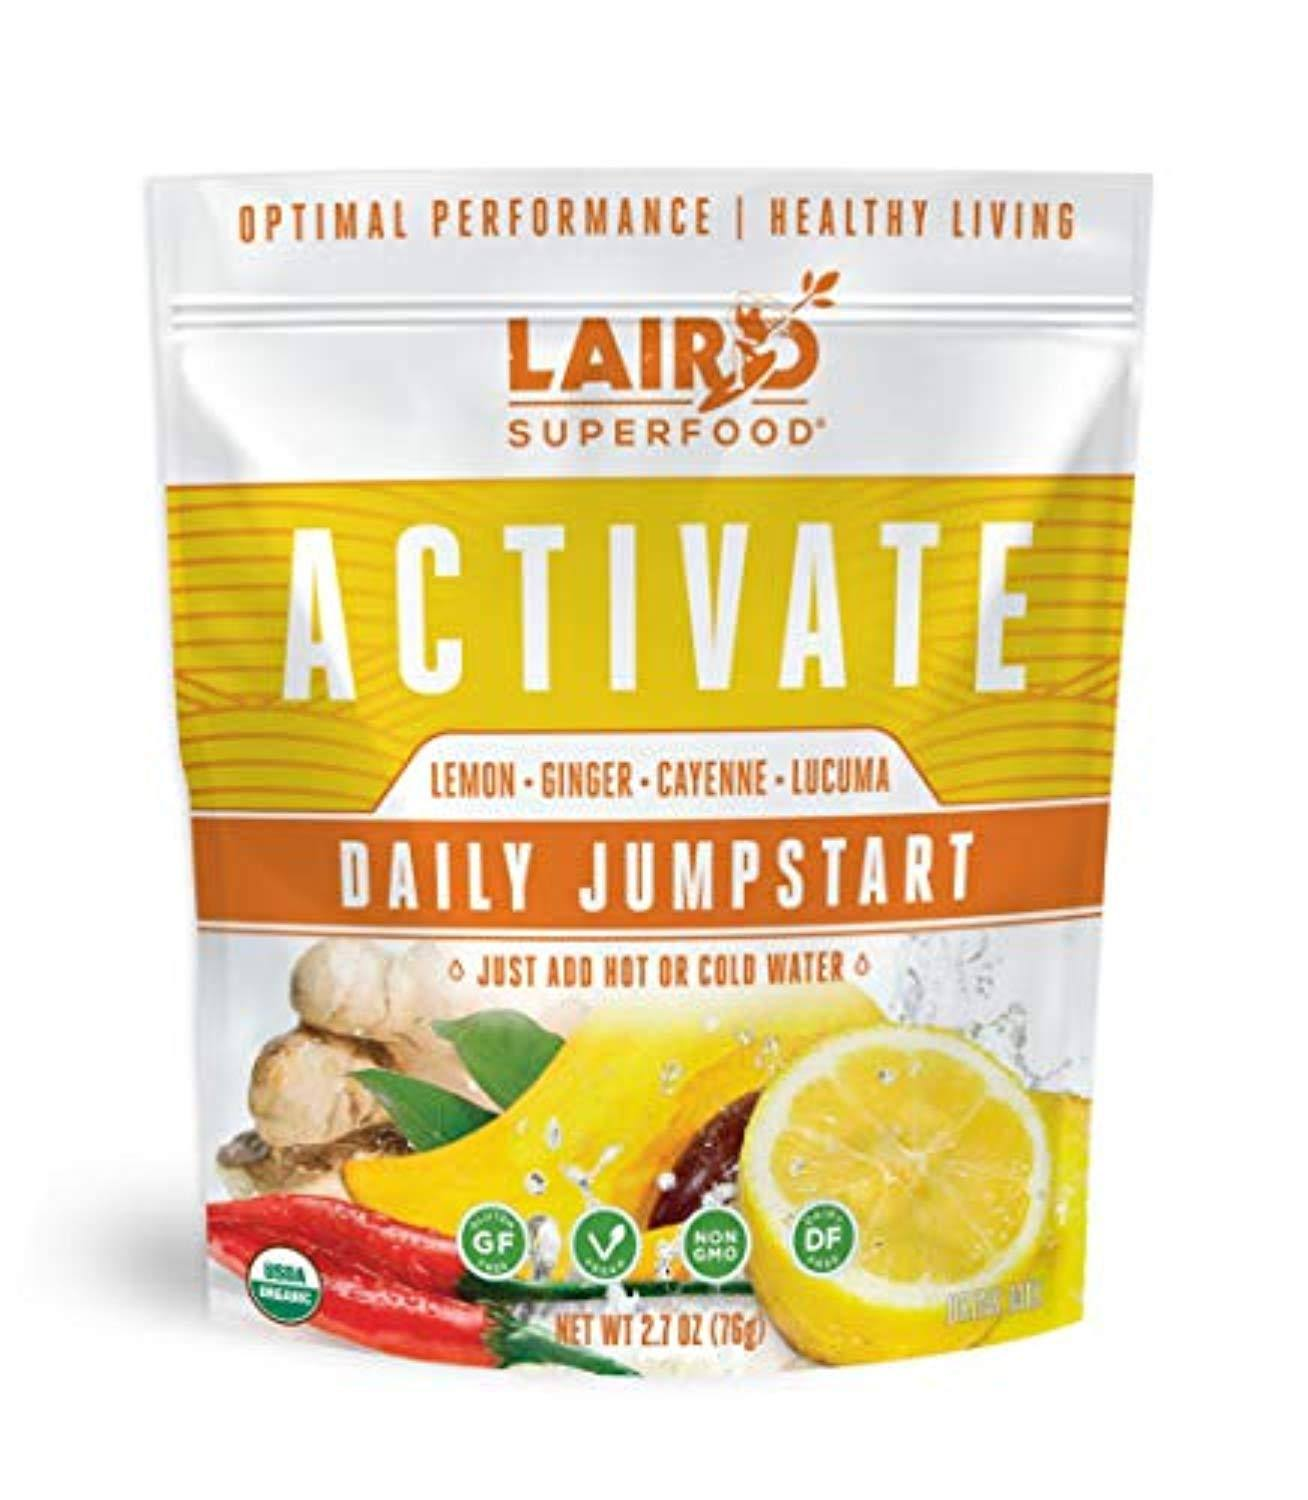 Laird Superfood Organic Activate Daily Jumpstart 2.7oz